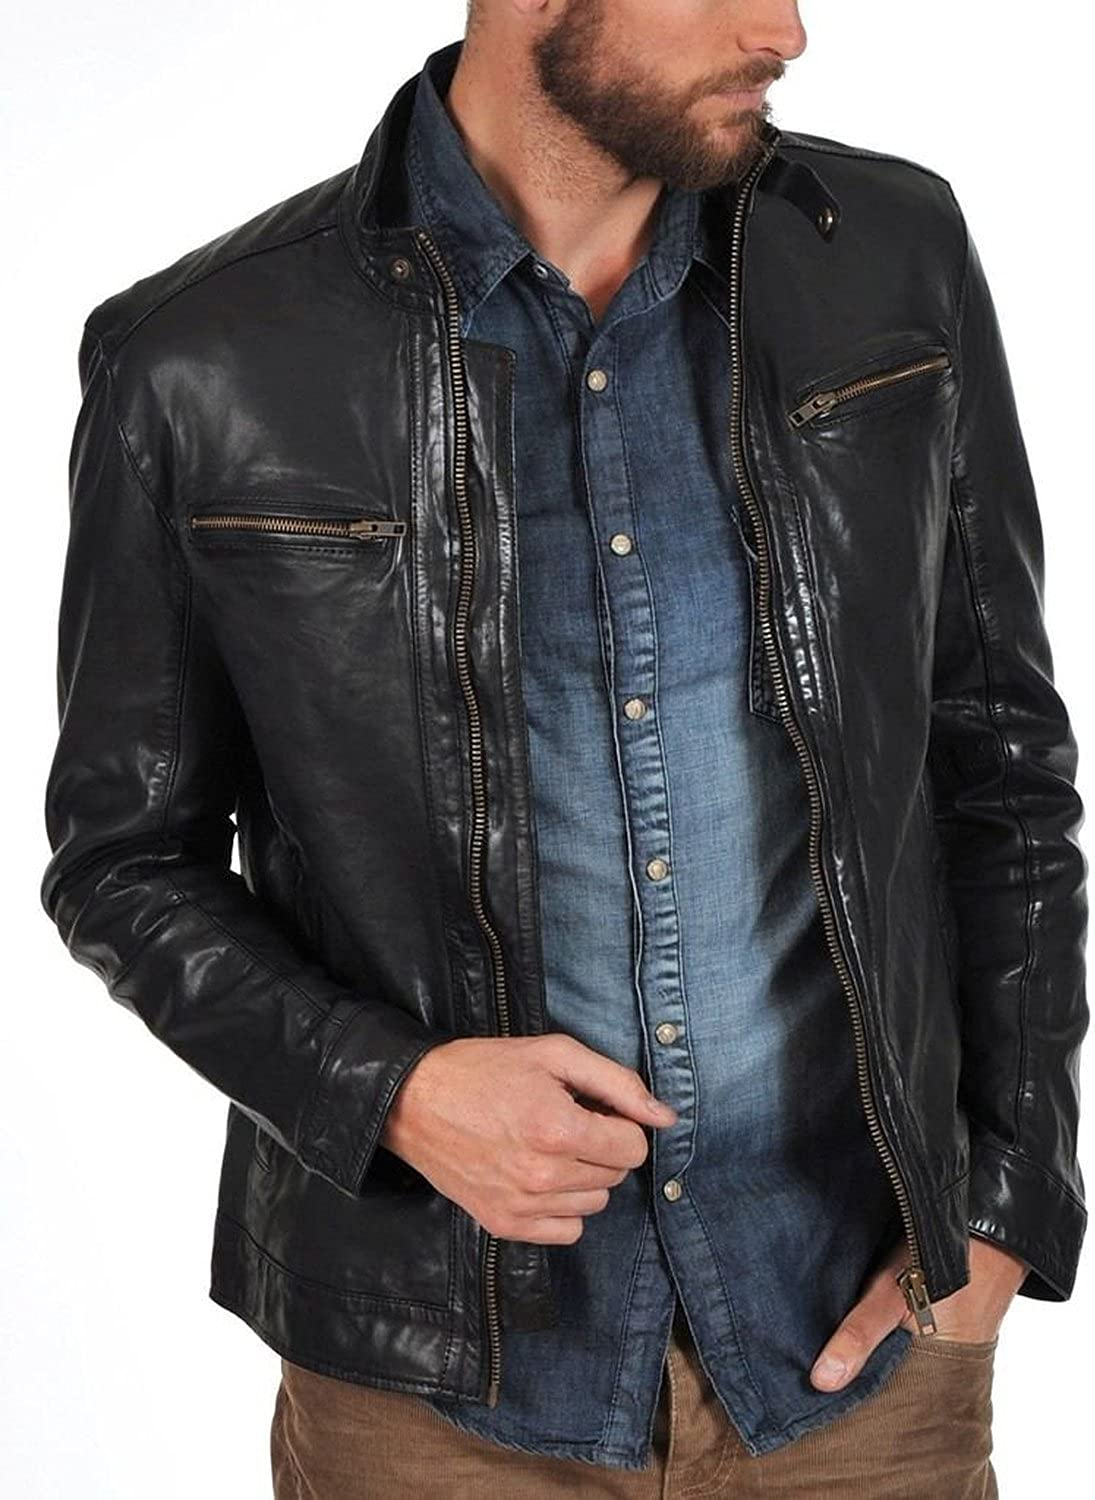 Kingdom Leather New Men Quilted Leather Jacket Soft Cow Leather Biker Bomber XC704